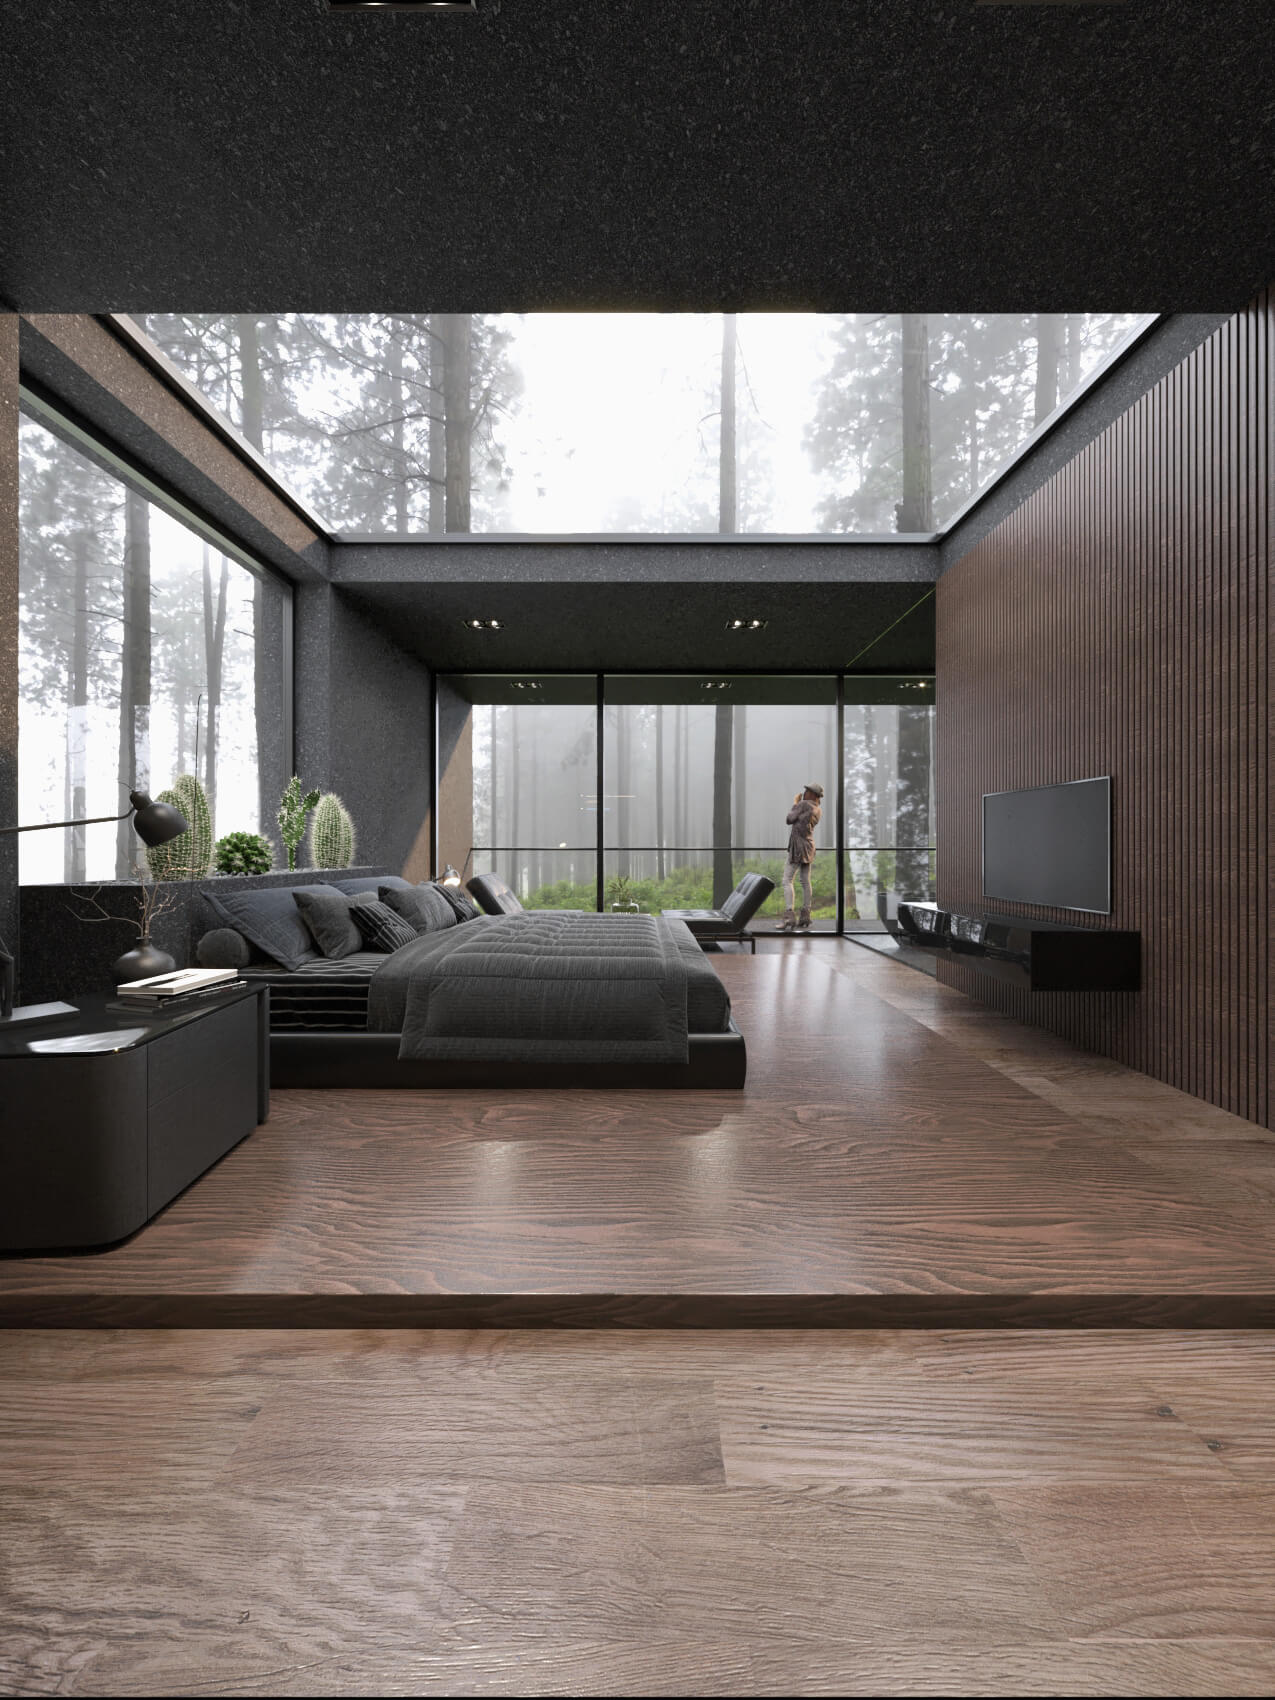 bedroom with skylight in the ceiling